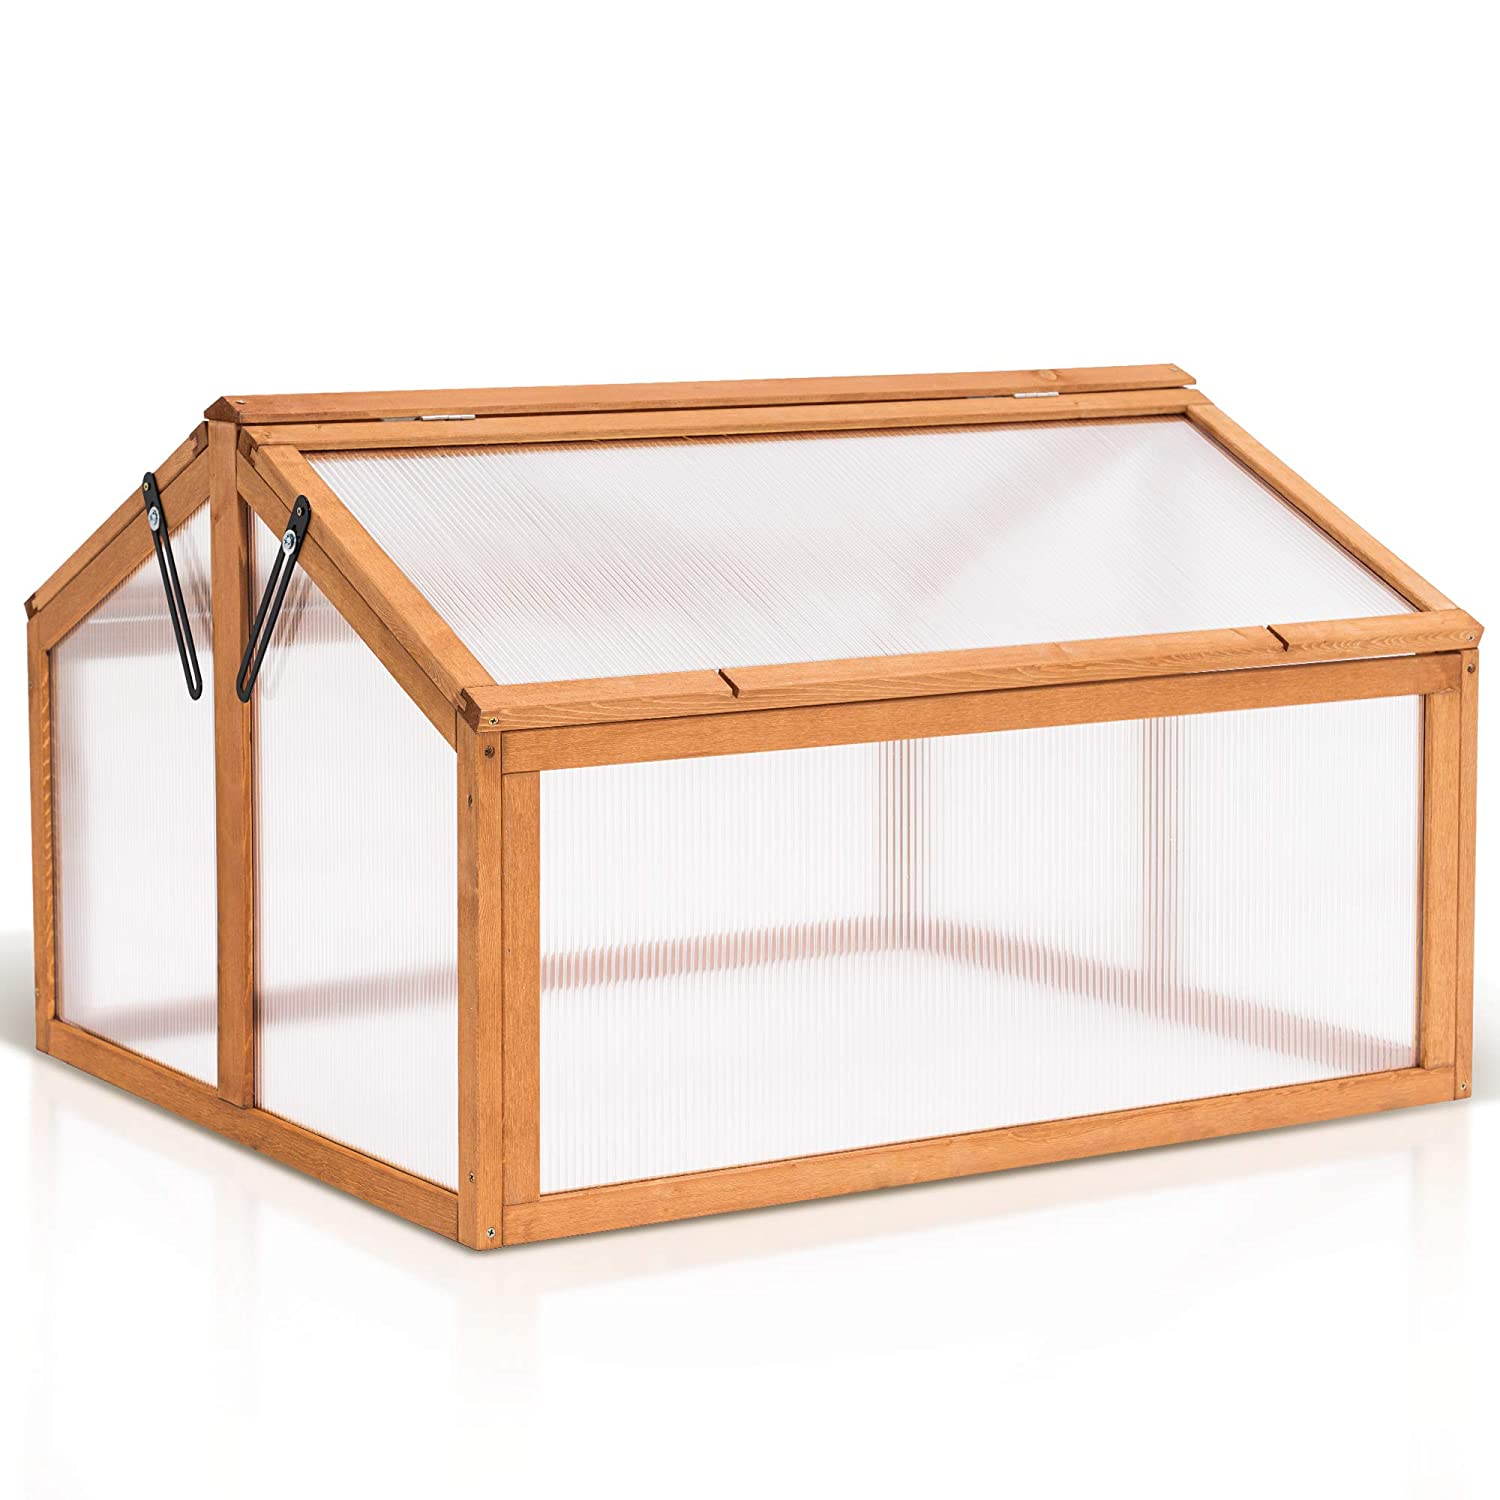 MCombo Double Box Wooden Greenhouse Ranking TOP8 Bed Frame trend rank Cold Plants Raised